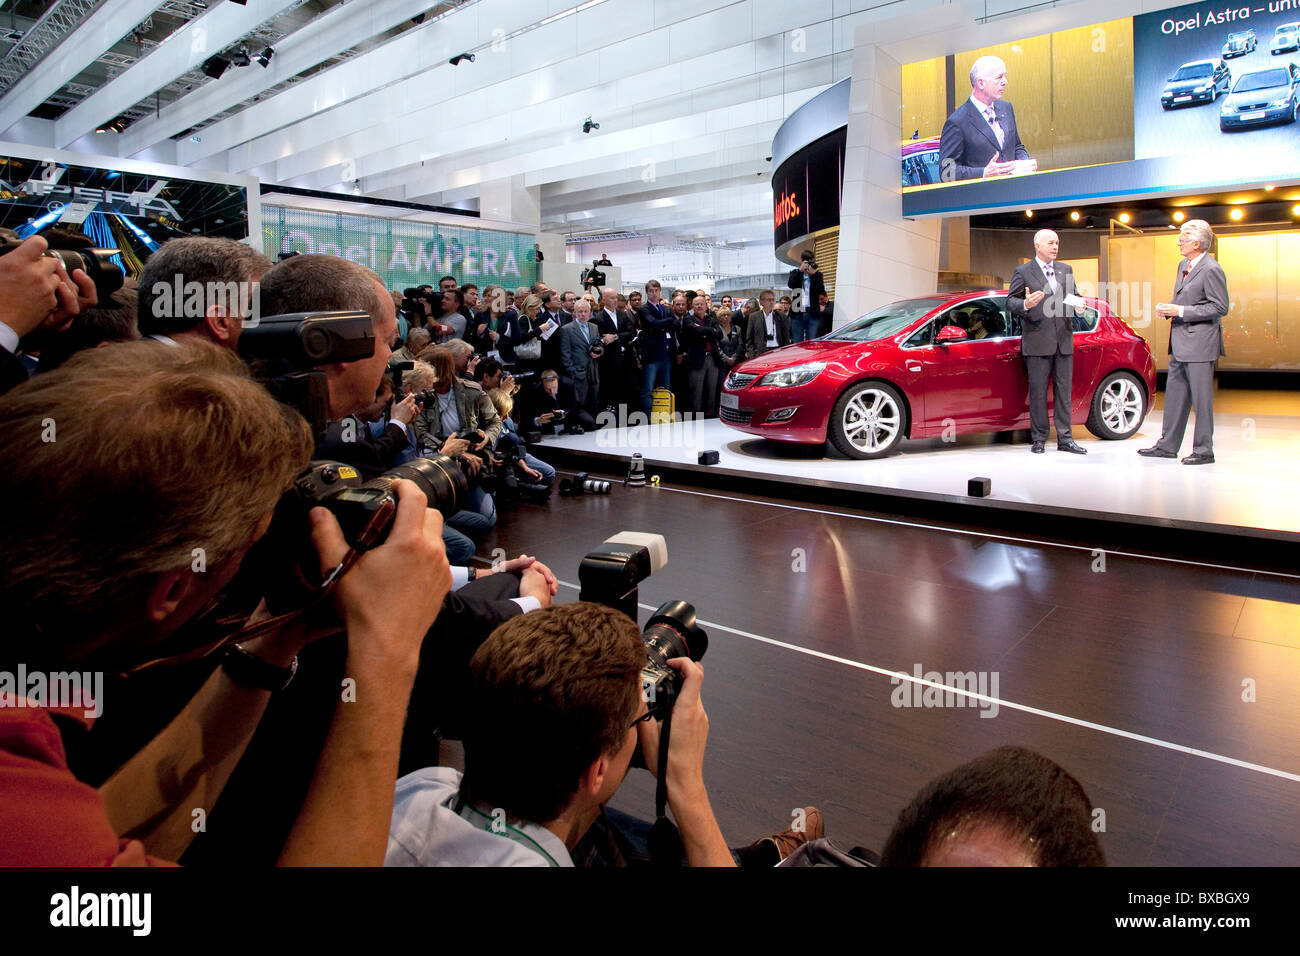 Journalists and photographers at the presentation of the new Opel Astra car at the 63. Internationale Automobilausstellung - Stock Image